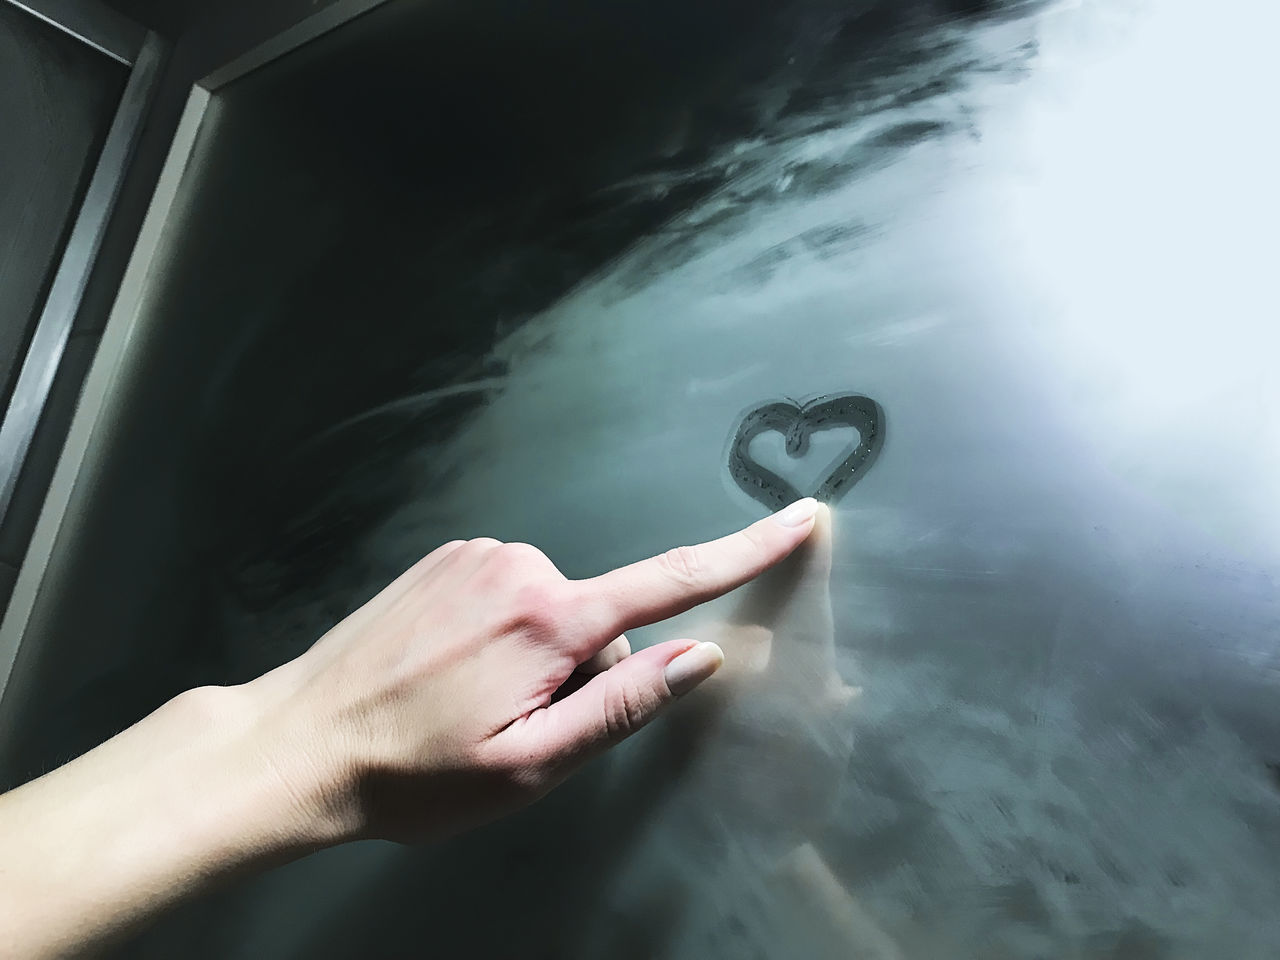 Cropped hand of woman drawing heart shape on wet mirror